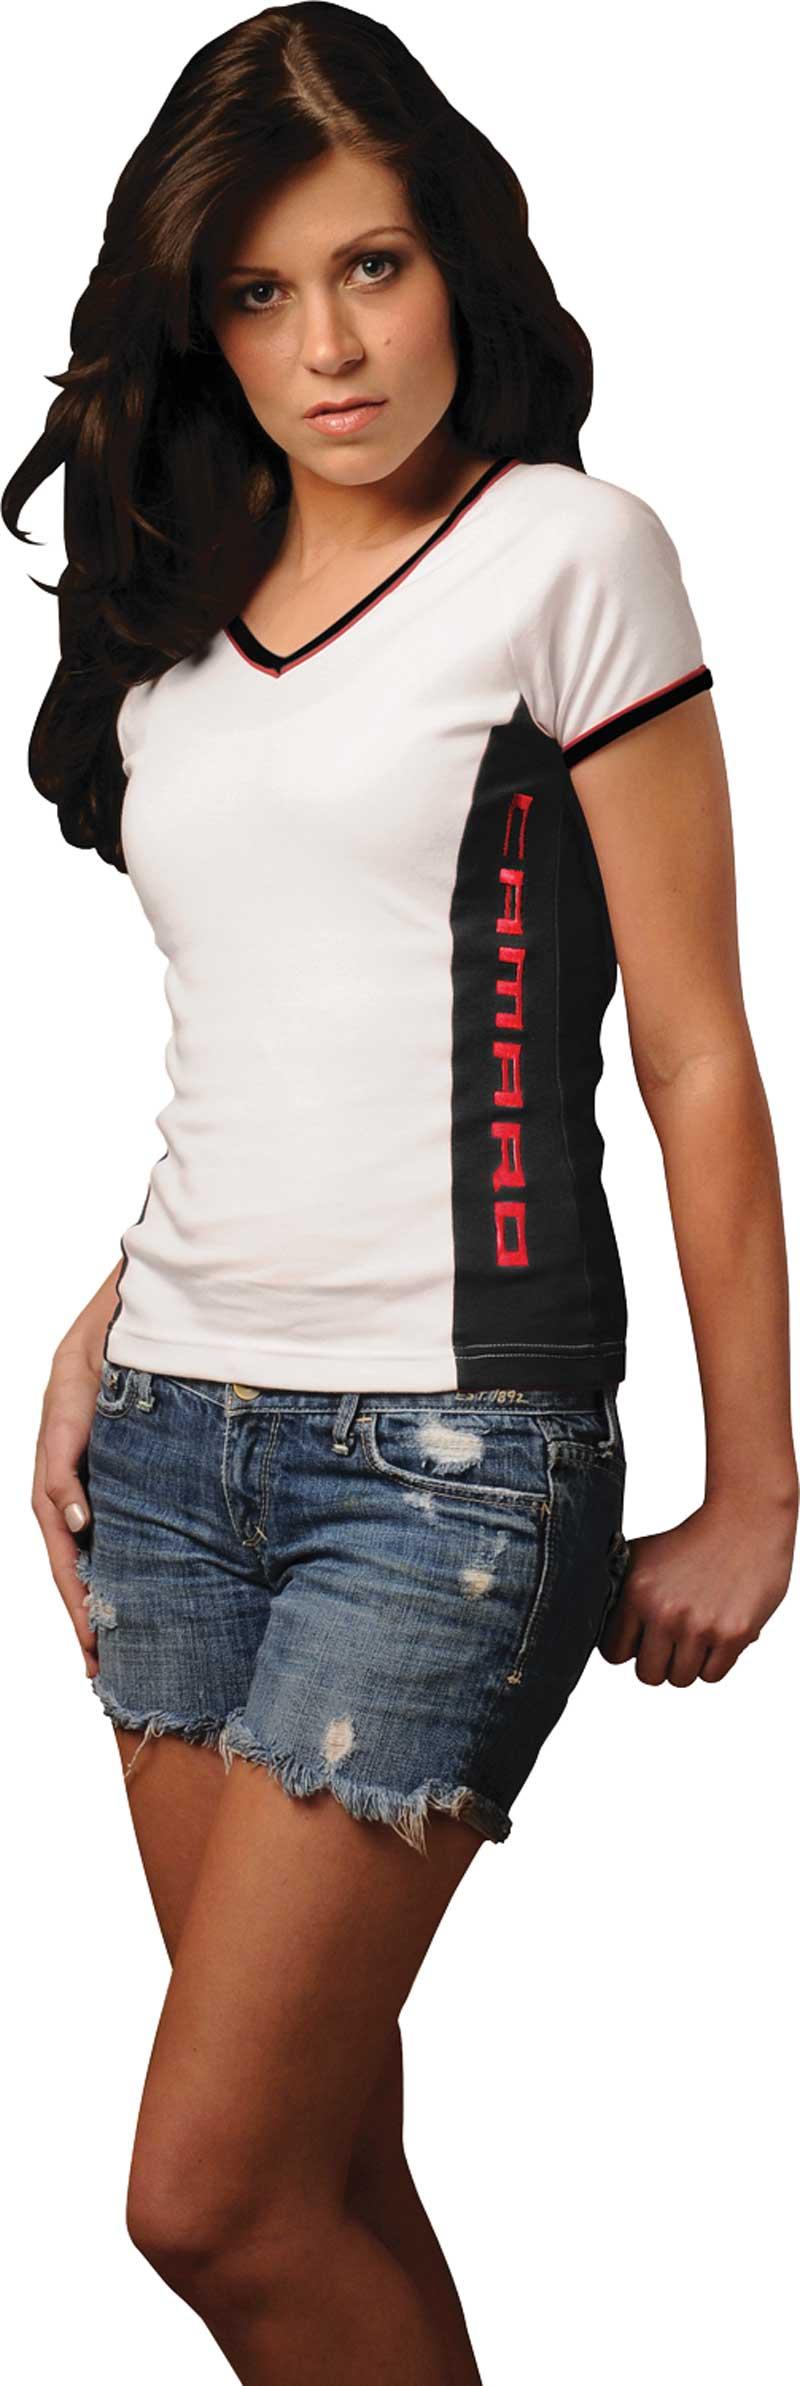 Small White Ladies V-Neck T-Shirt with Black Side Panel and Red Block Style Camaro Lettering